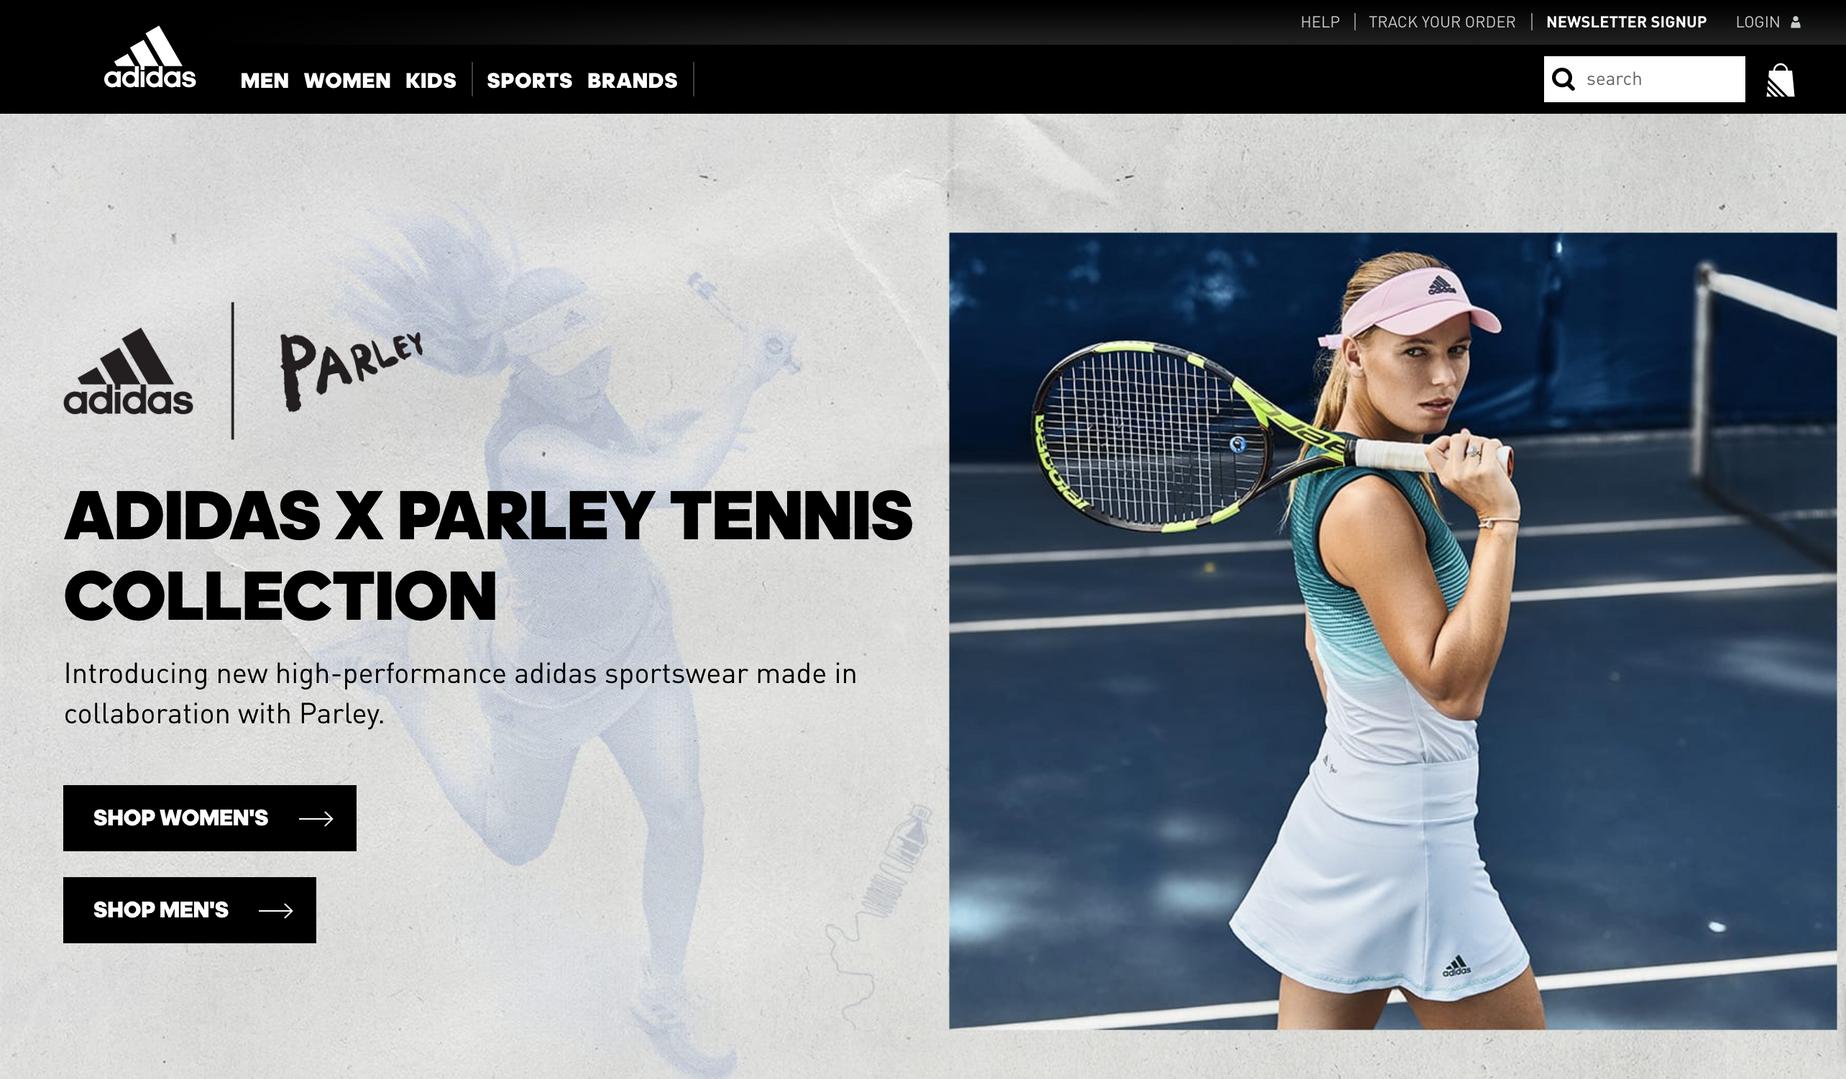 Adidas Tennis Parley Collection 1